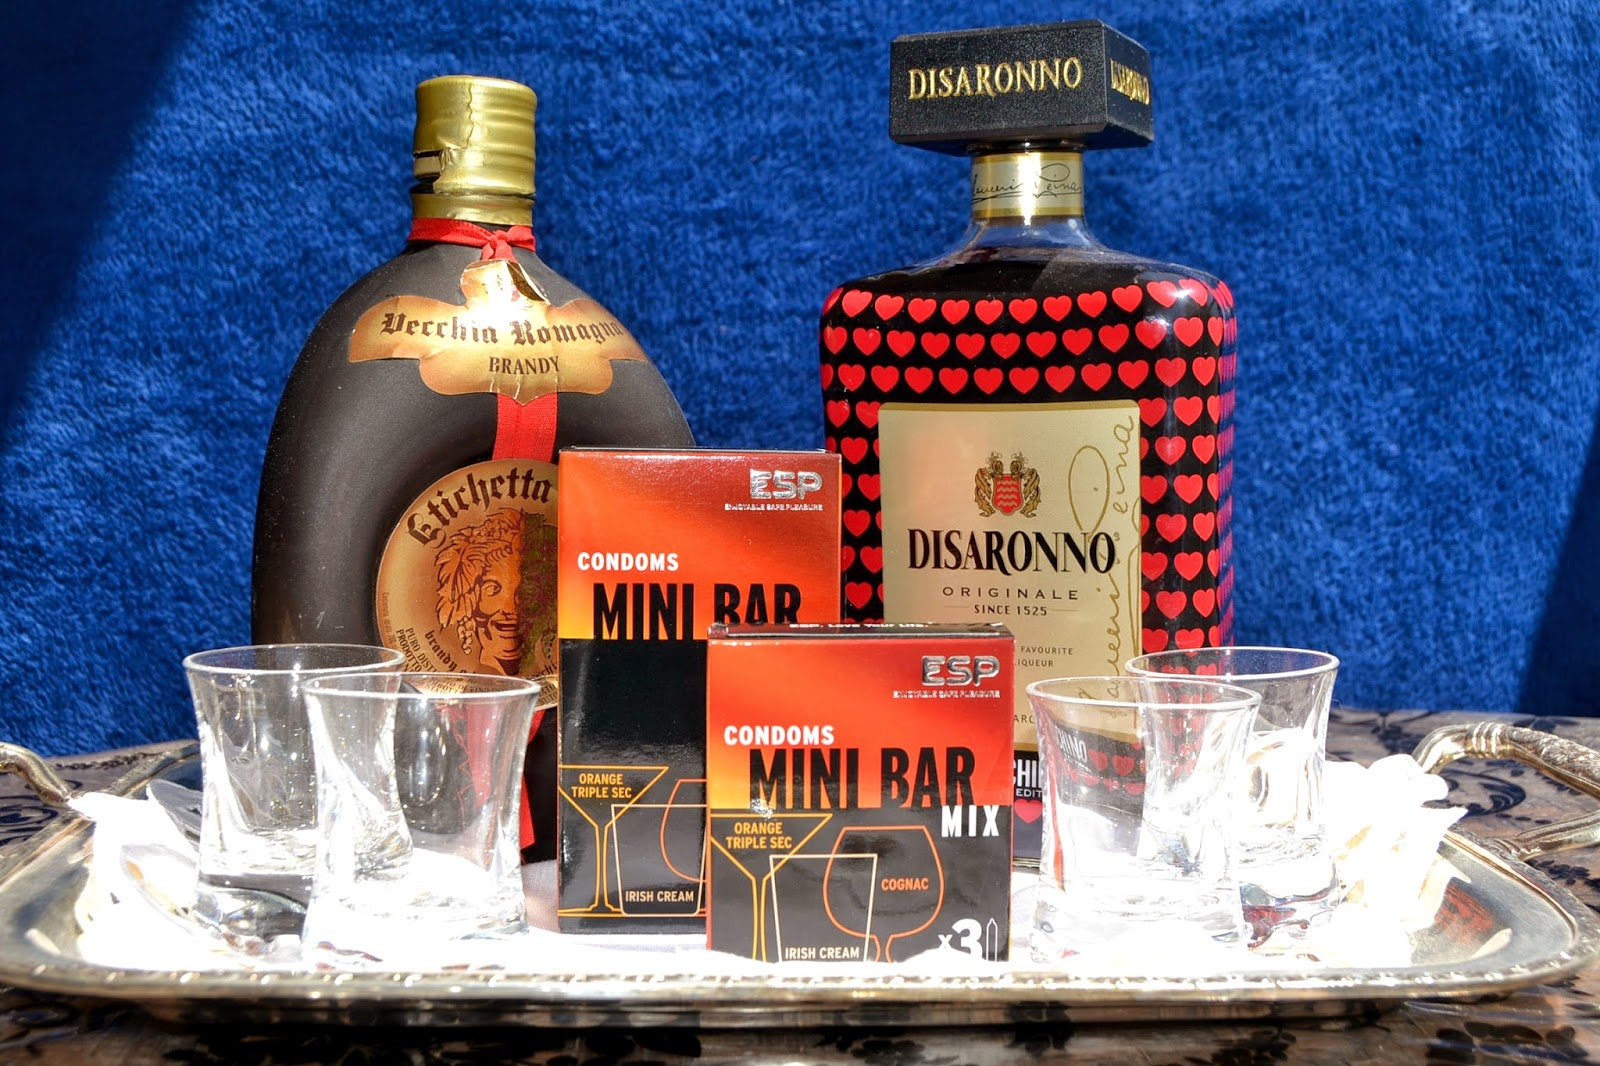 http://www.syriouslyinfashion.com/2015/04/esp-mini-bar-mix-review.html